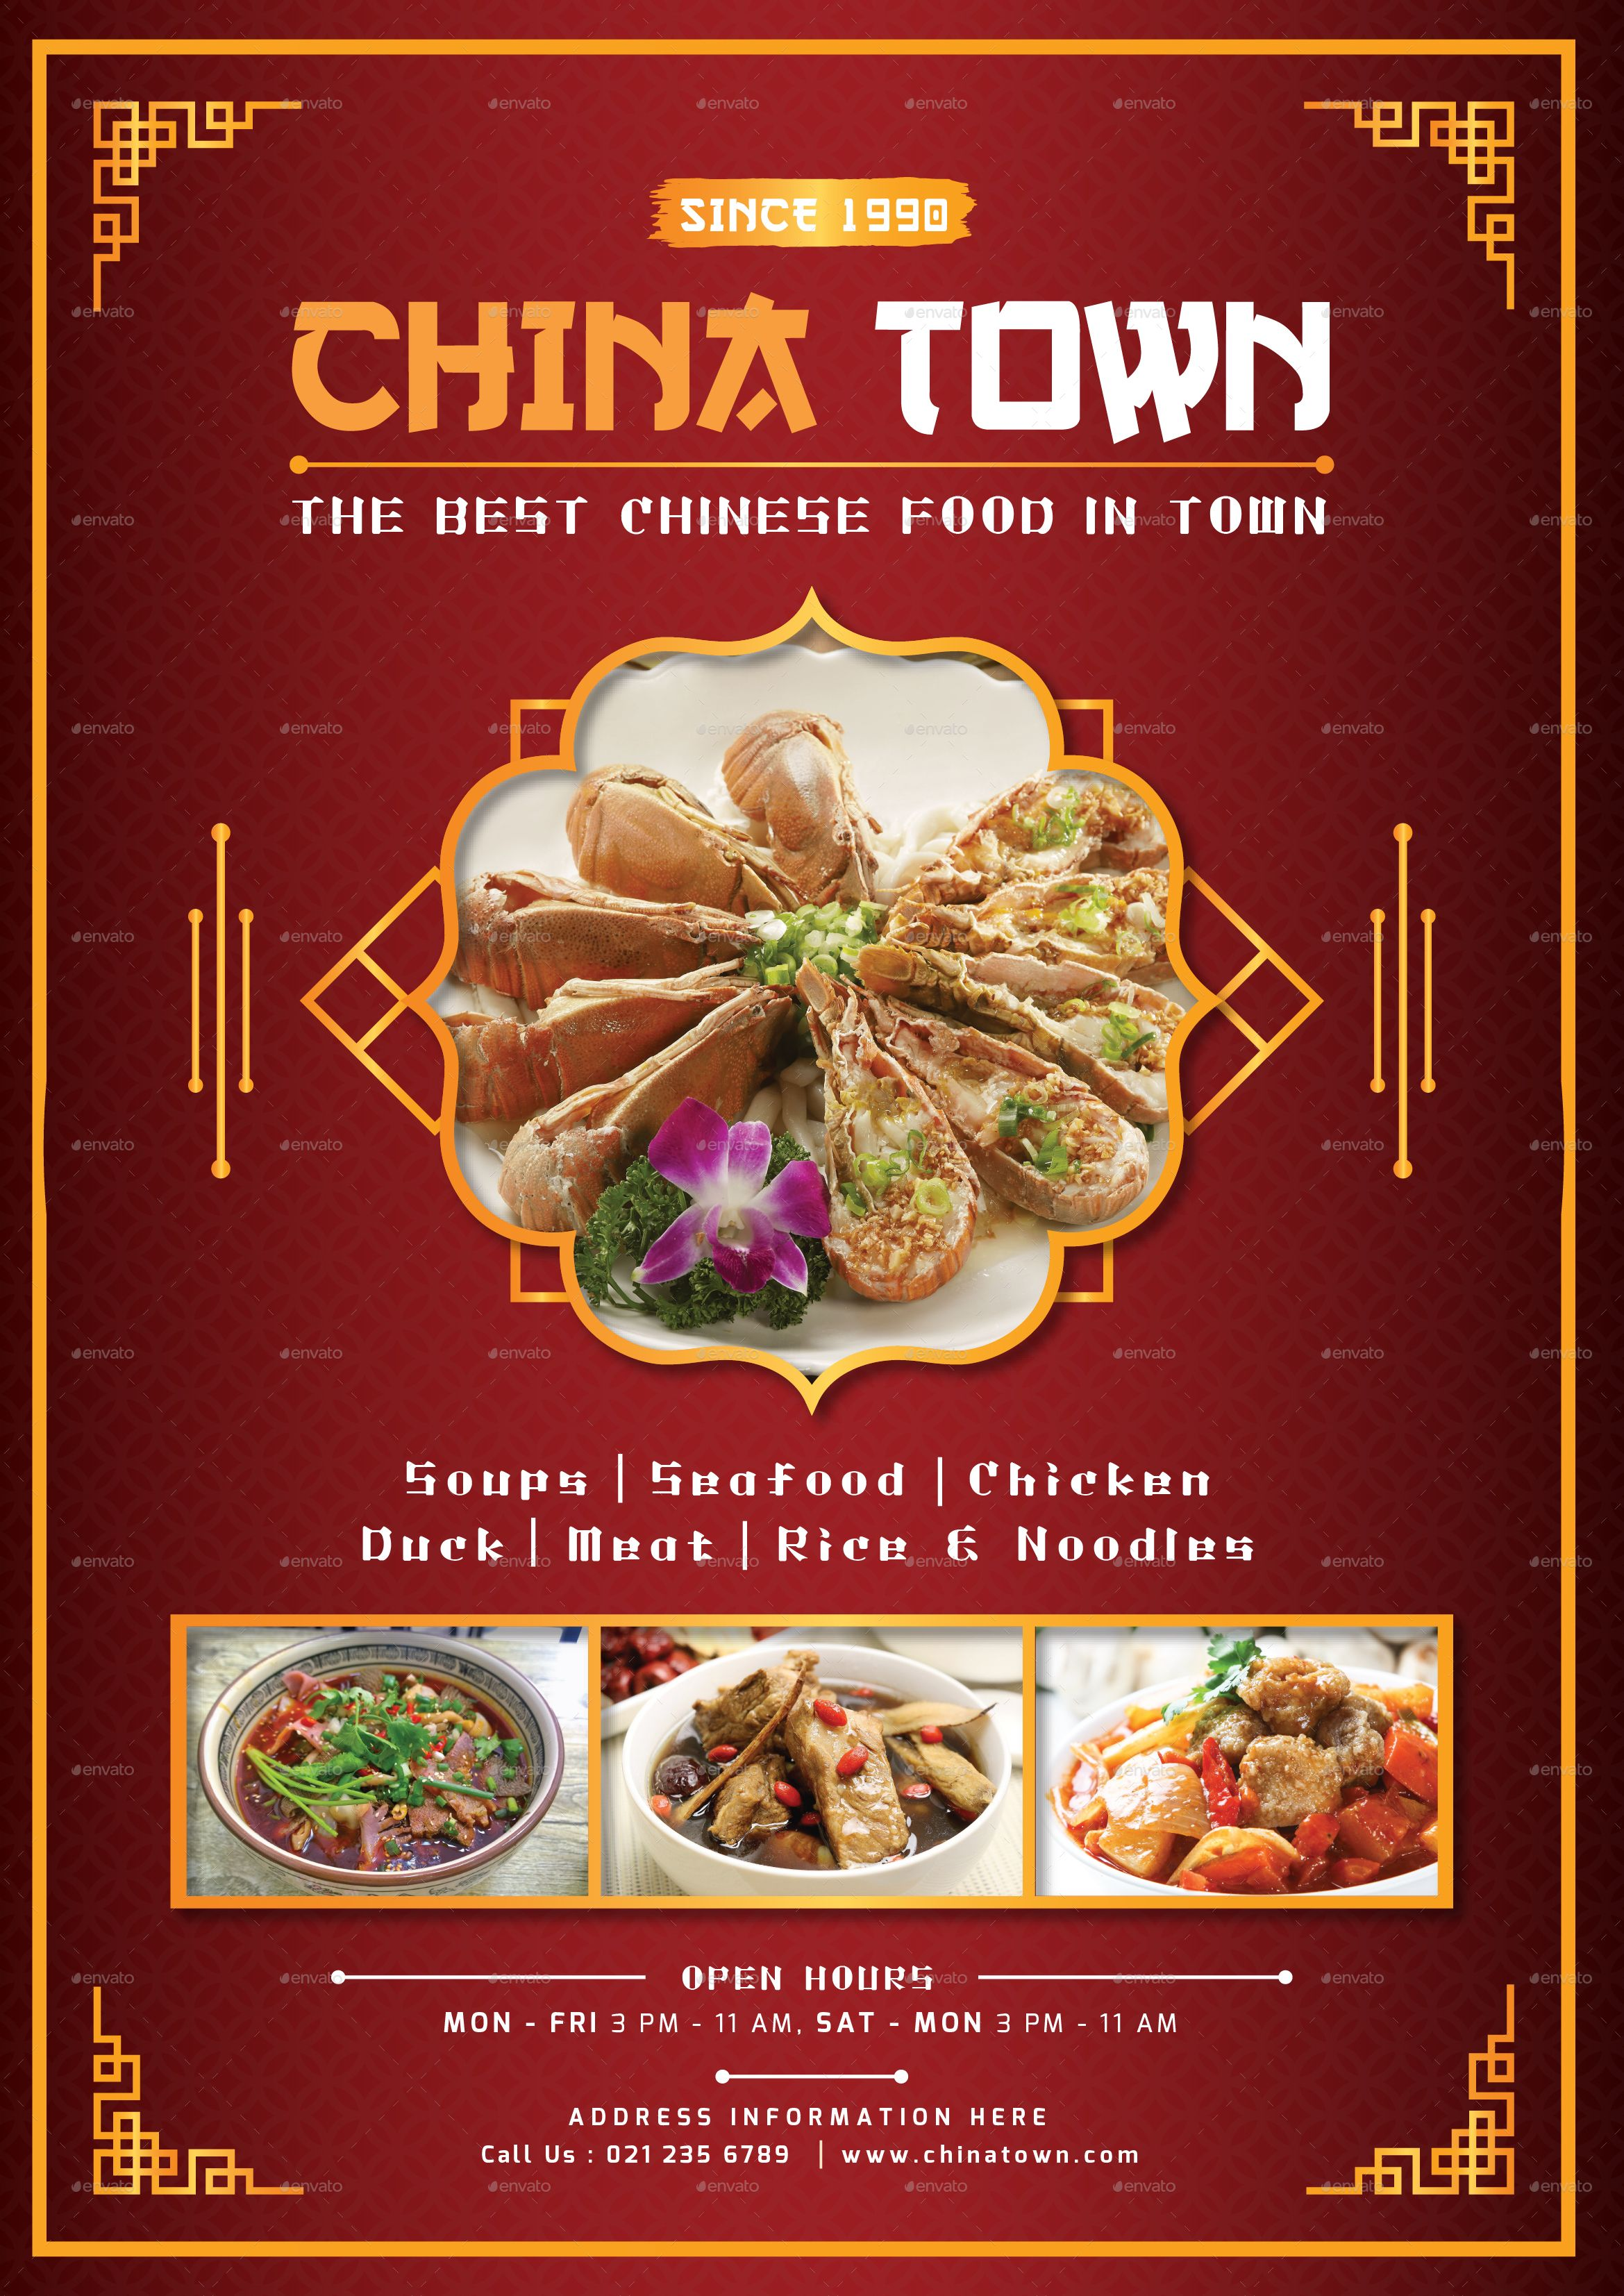 this is a beautiful food menu design for a chinese food restaurant